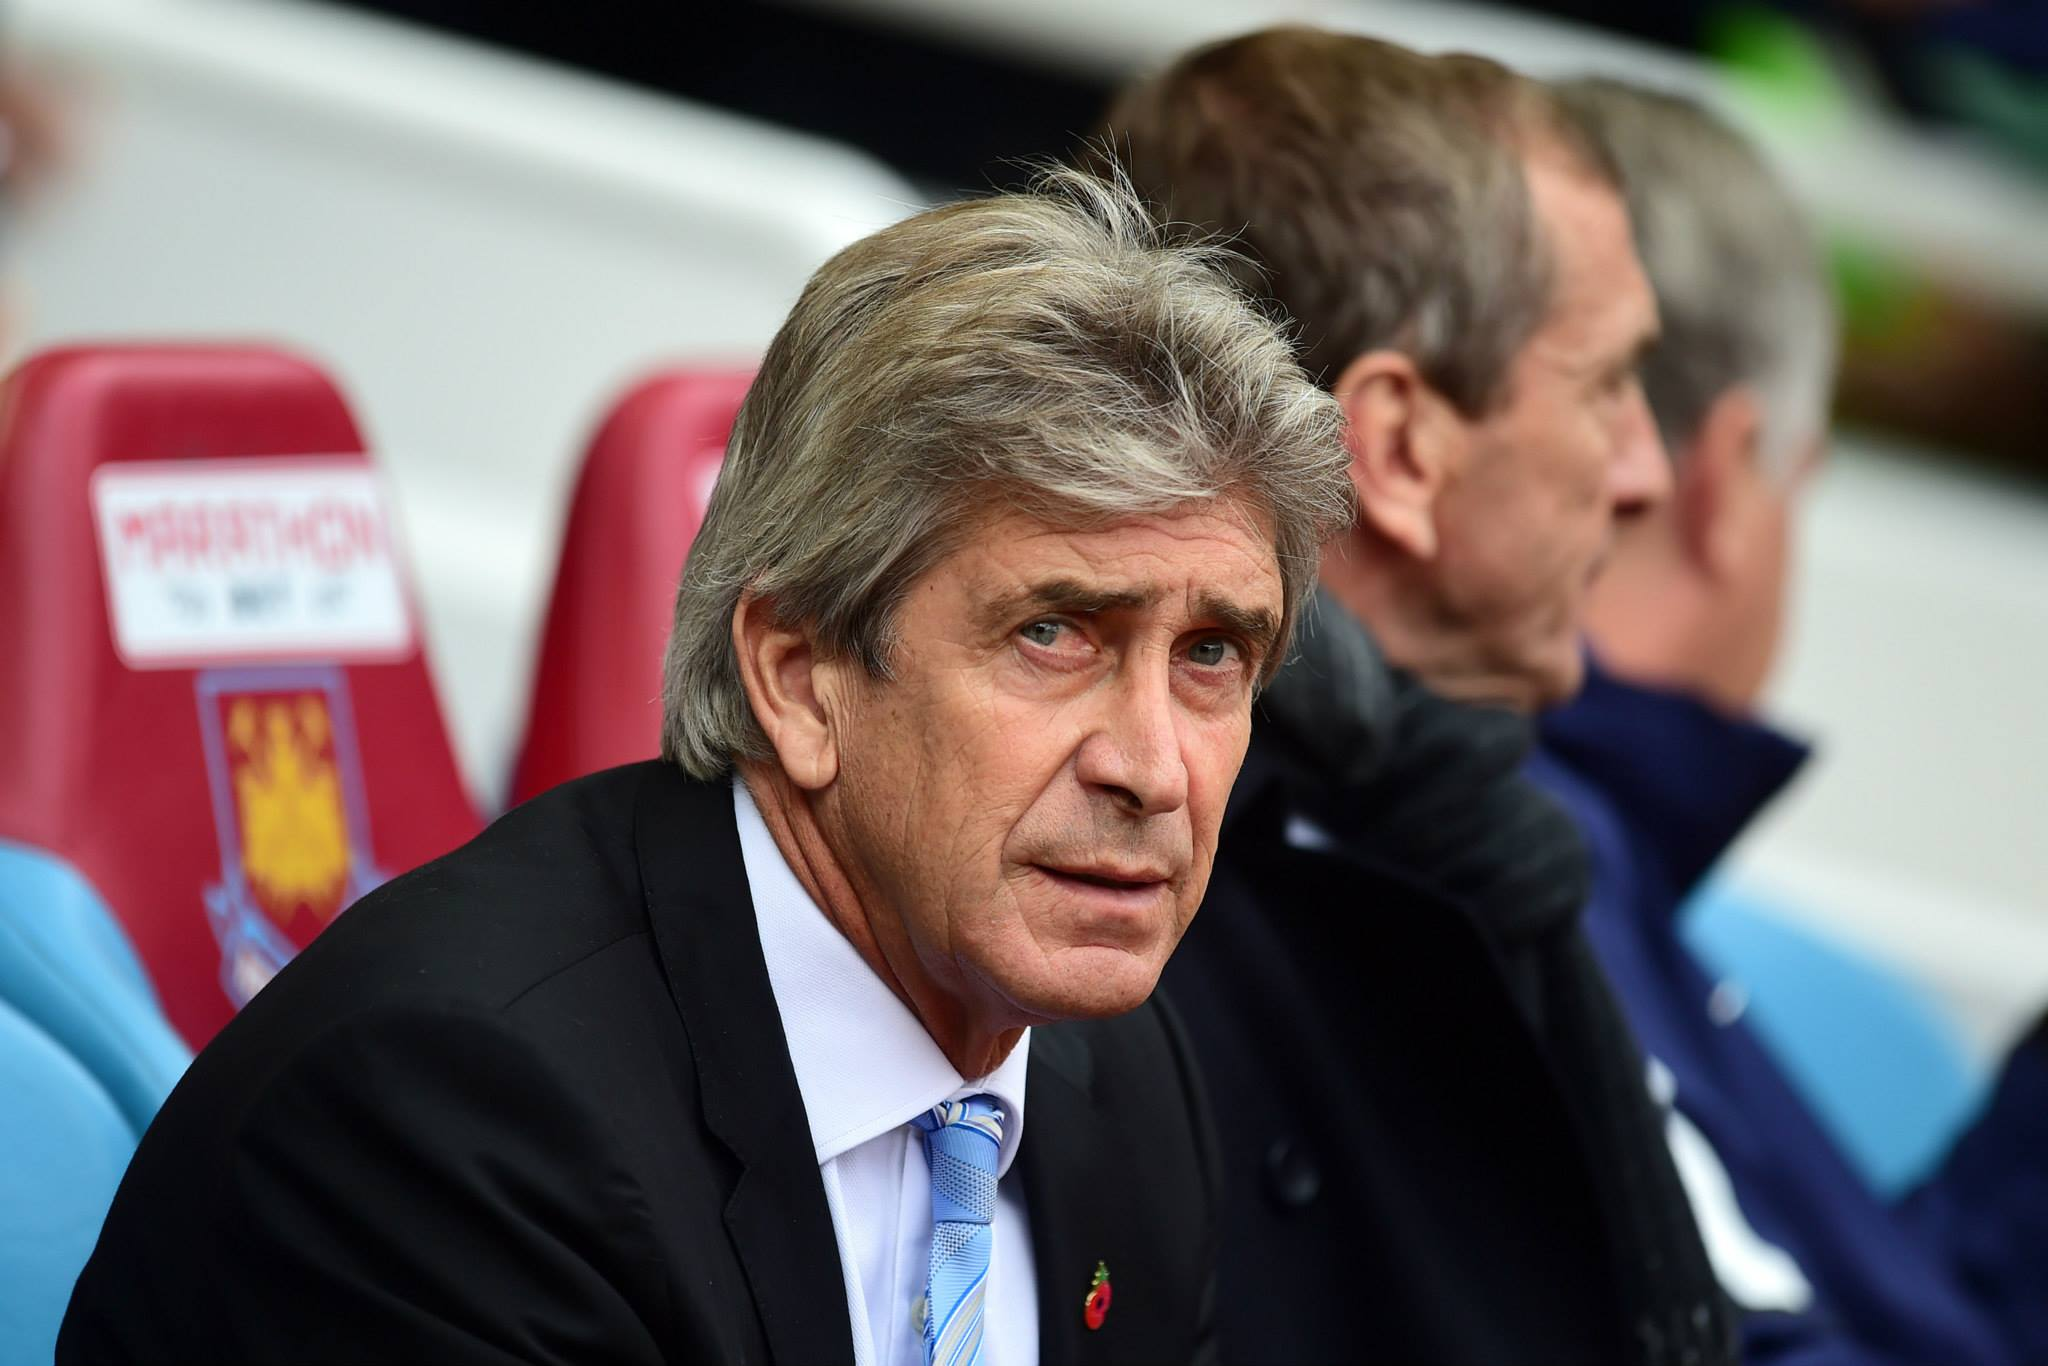 Incoming - Pellegrini is under intense pressure after dreadful City displays at Liverpool and Burnley. Courtesy@MCFC